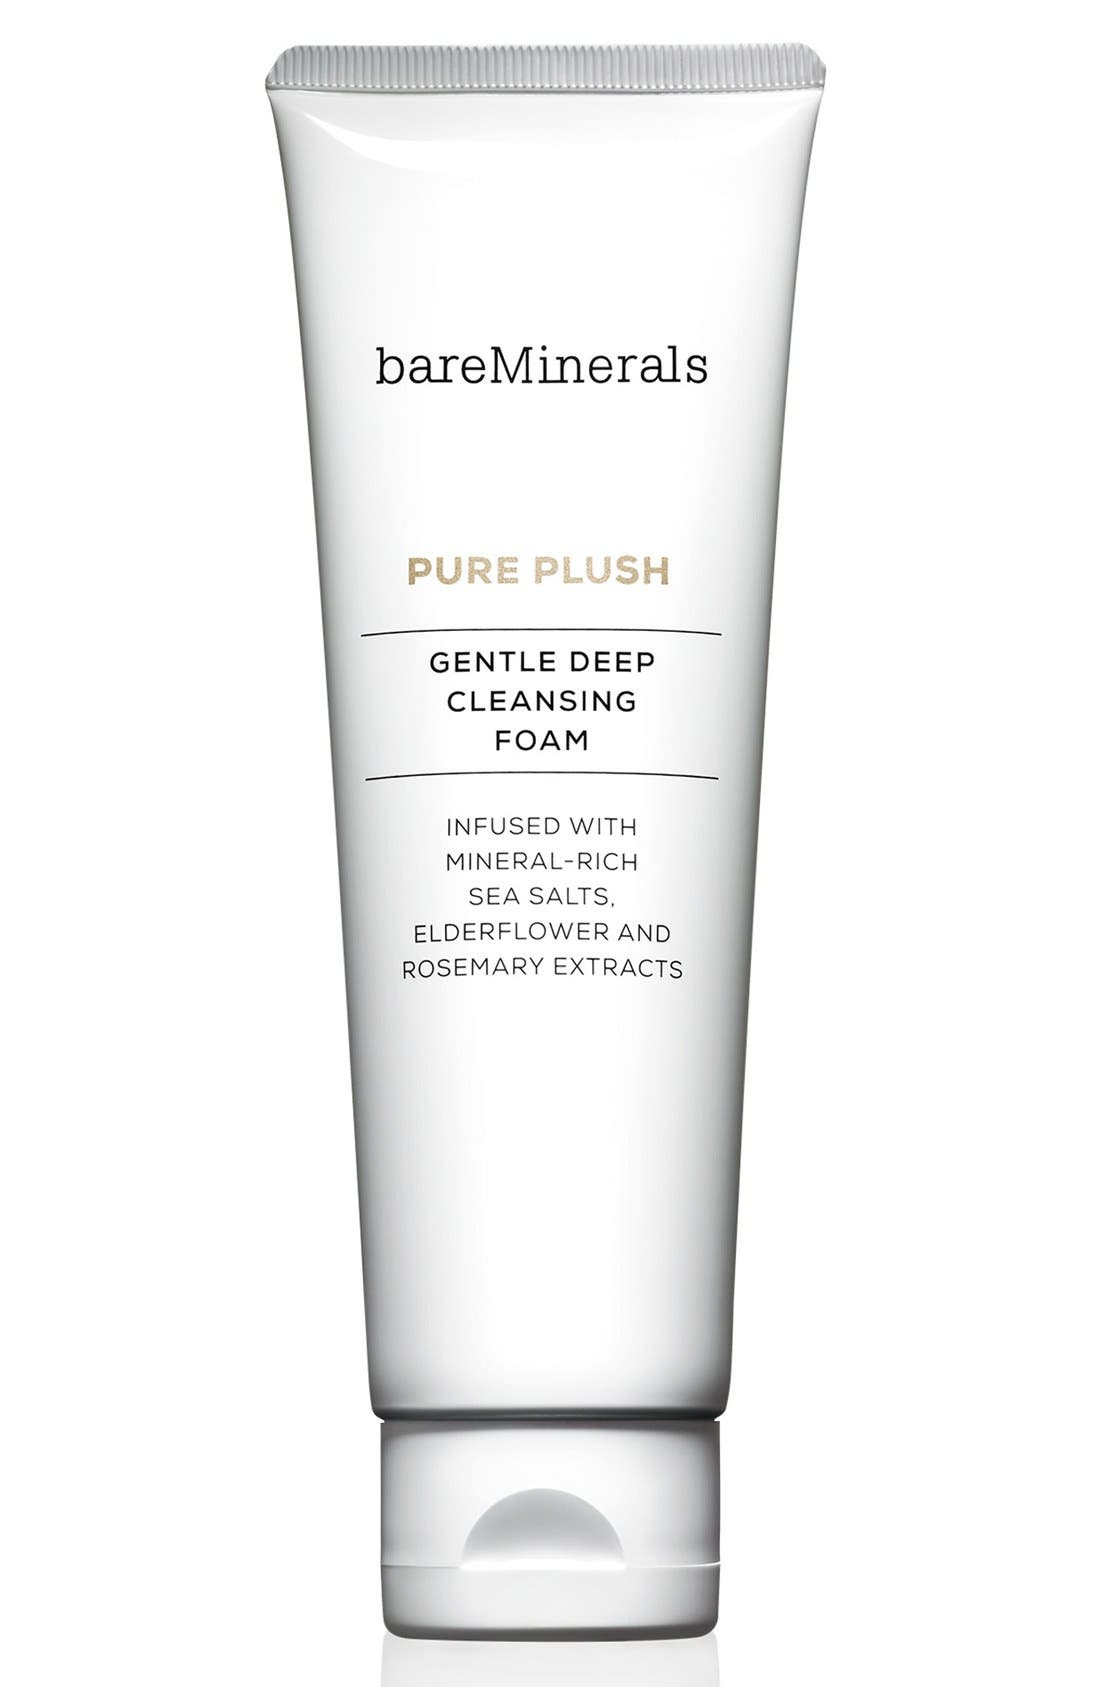 bareMinerals® Pure Plush Gentle Deep Cleansing Foam